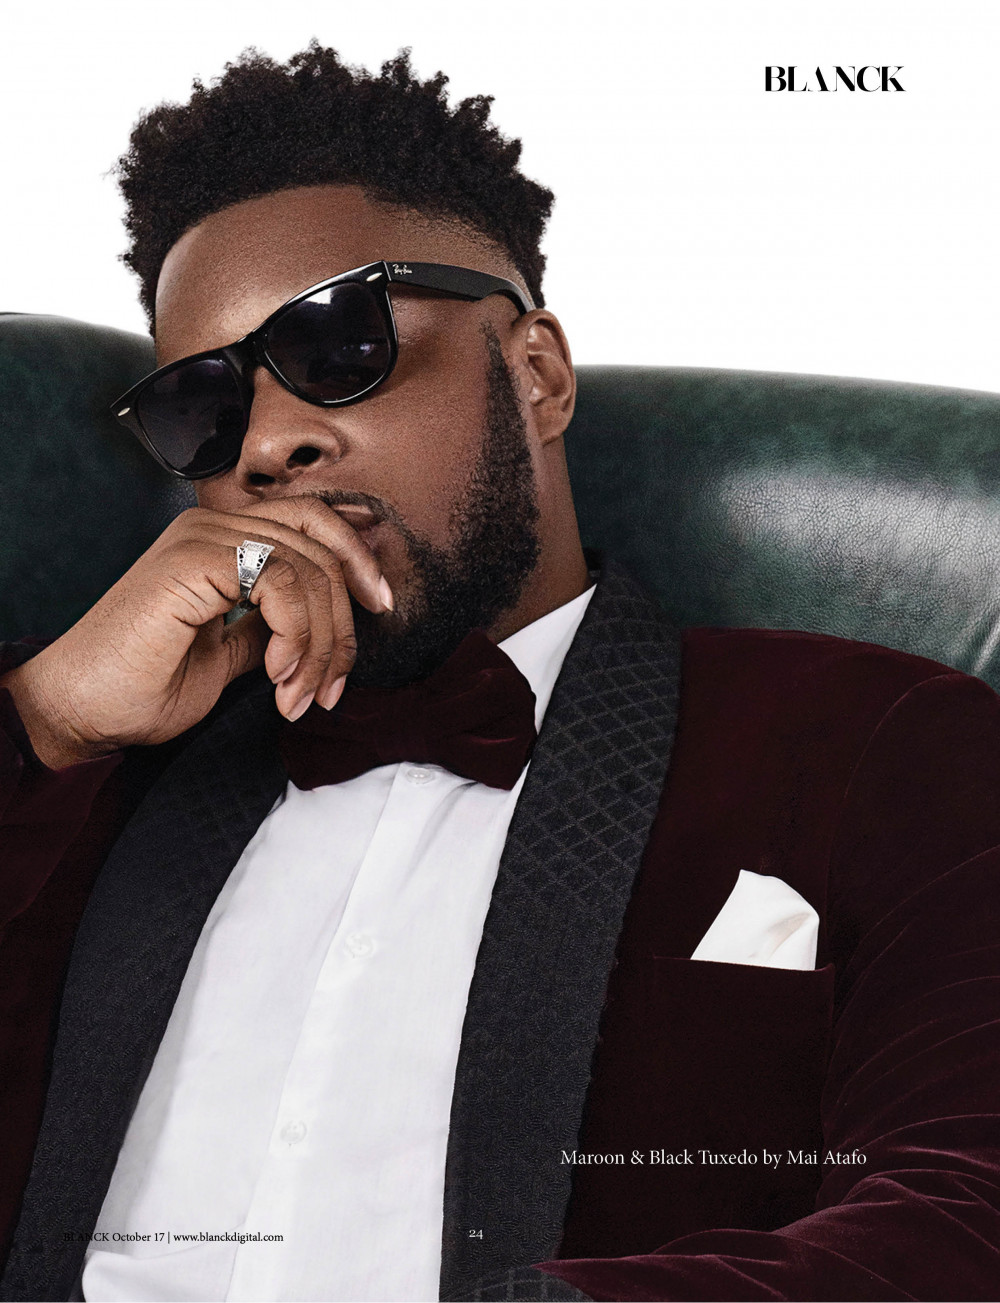 creating An Entirely New Music Genre! Maleek Berry covers Blanck Magazine's Latest Issue